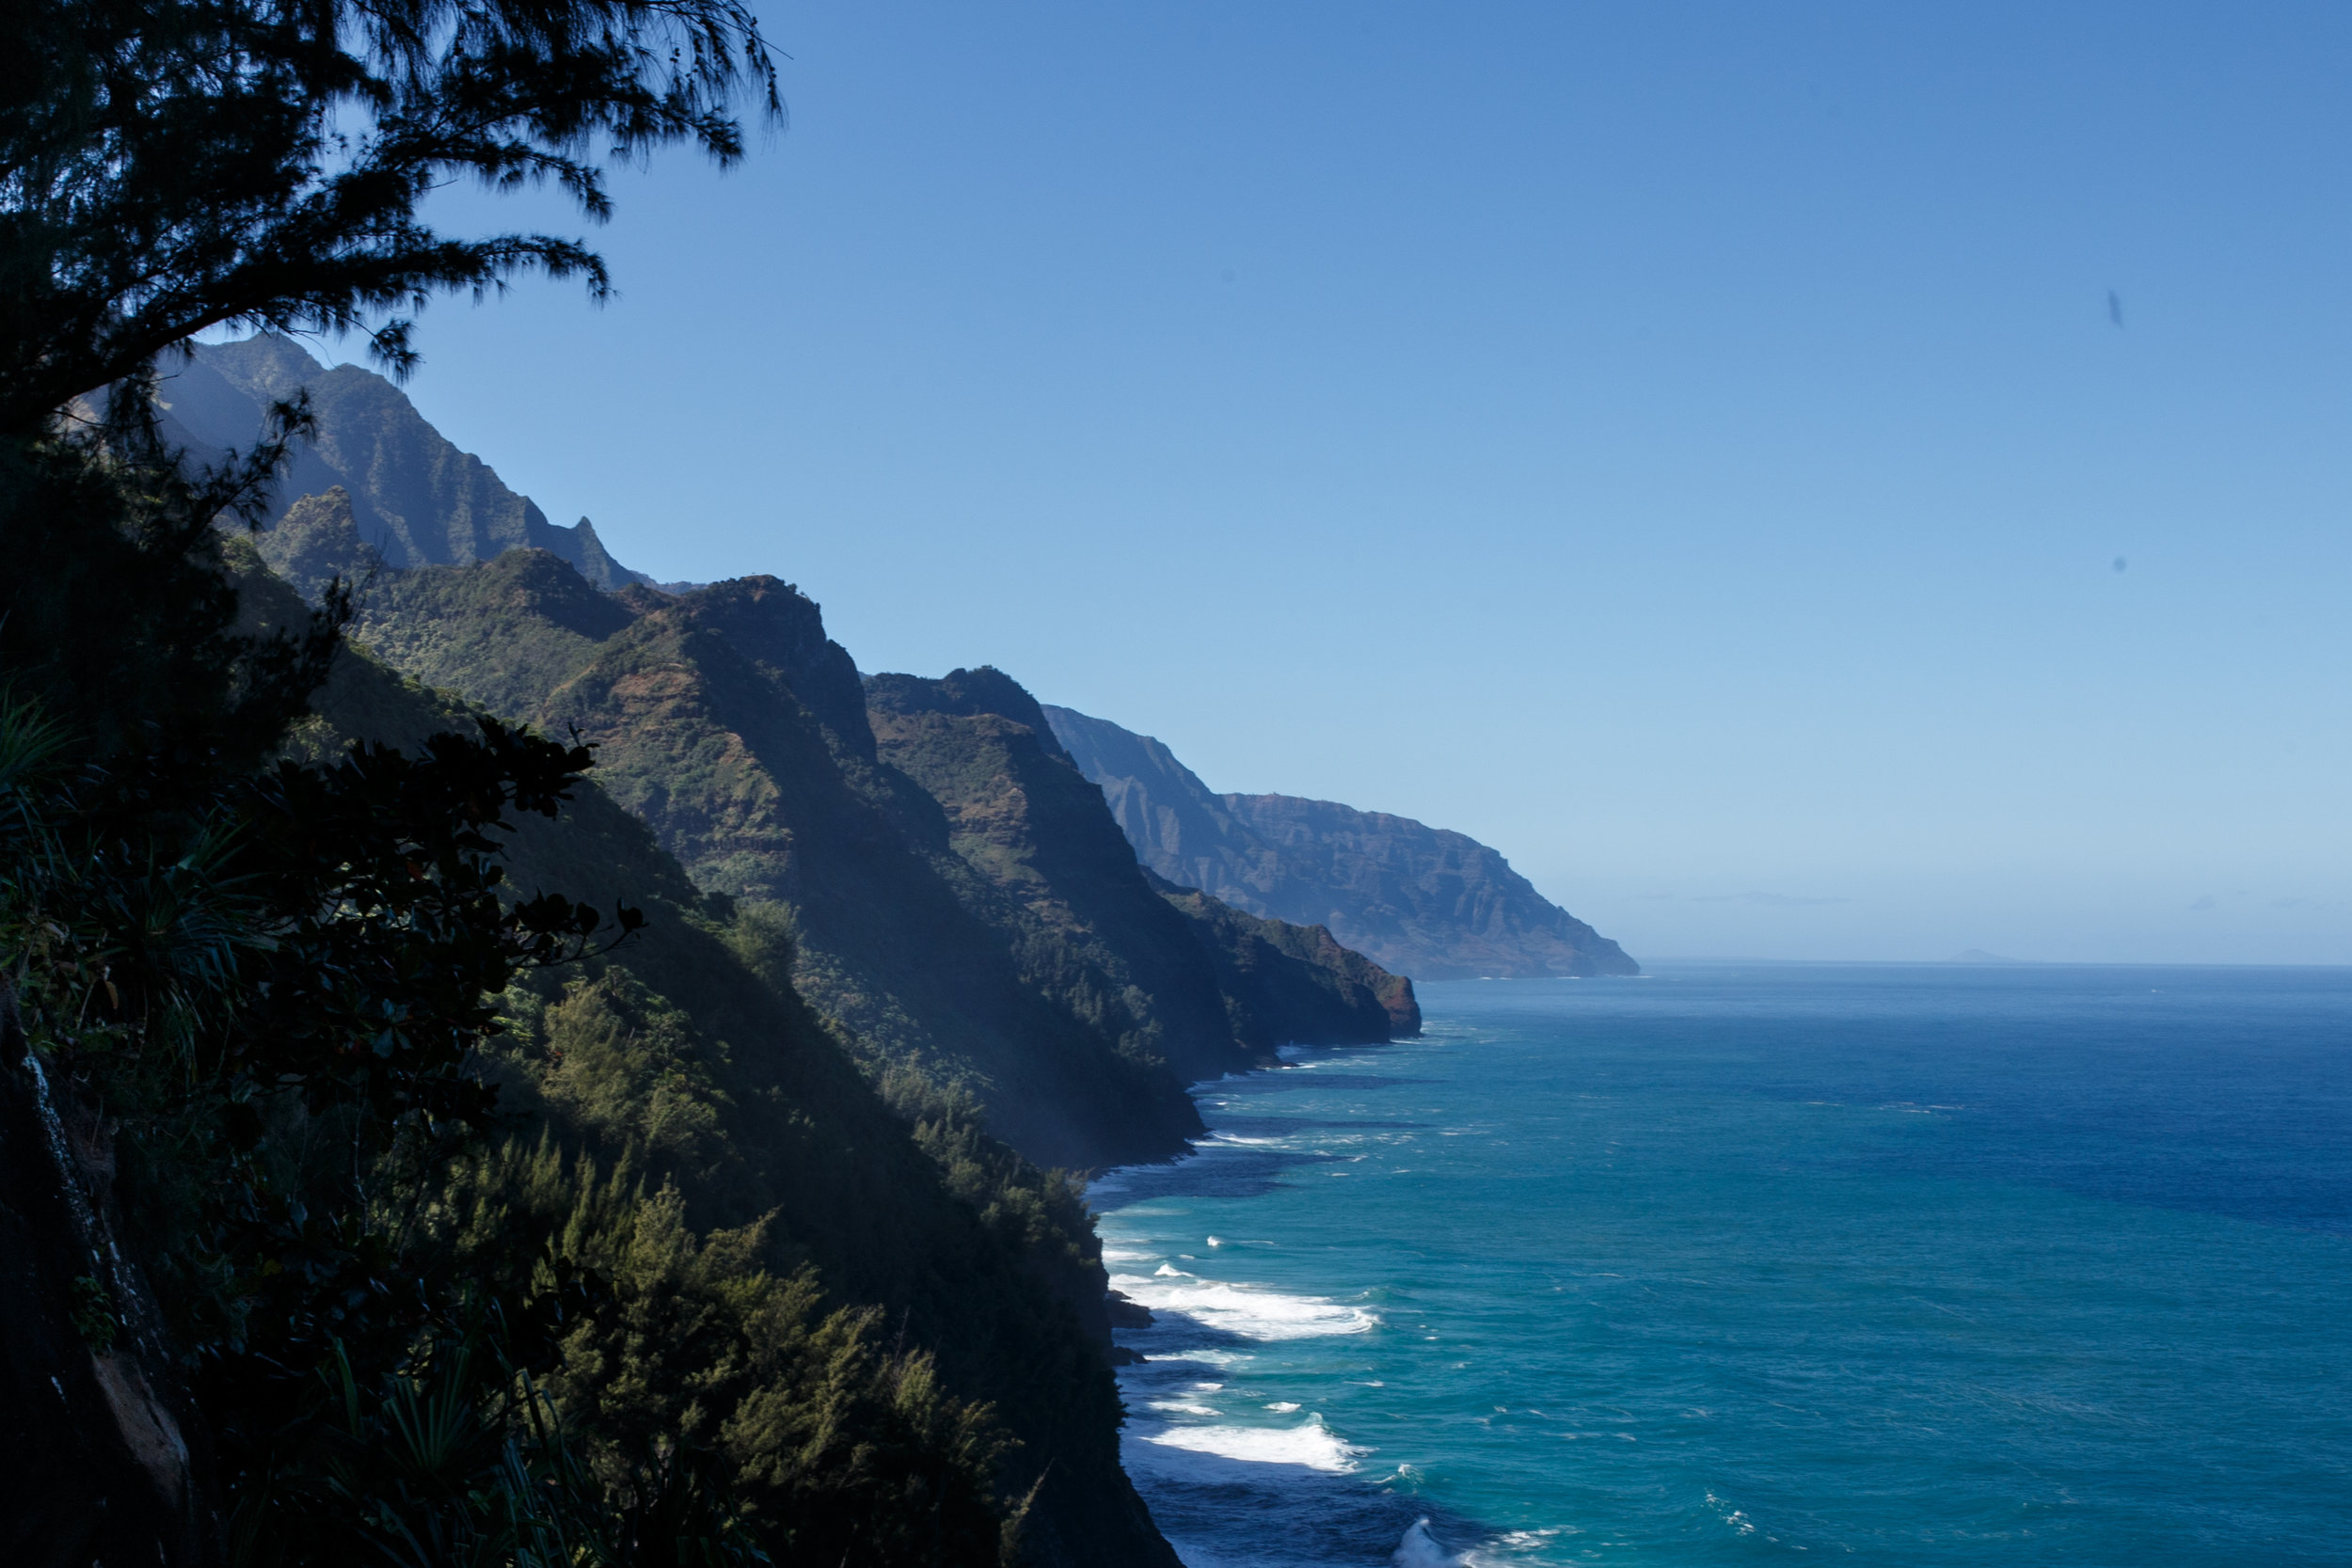 Peering out at the switchbacks and cliffs to come against a clear Hawaiian sky and calm ocean waters.